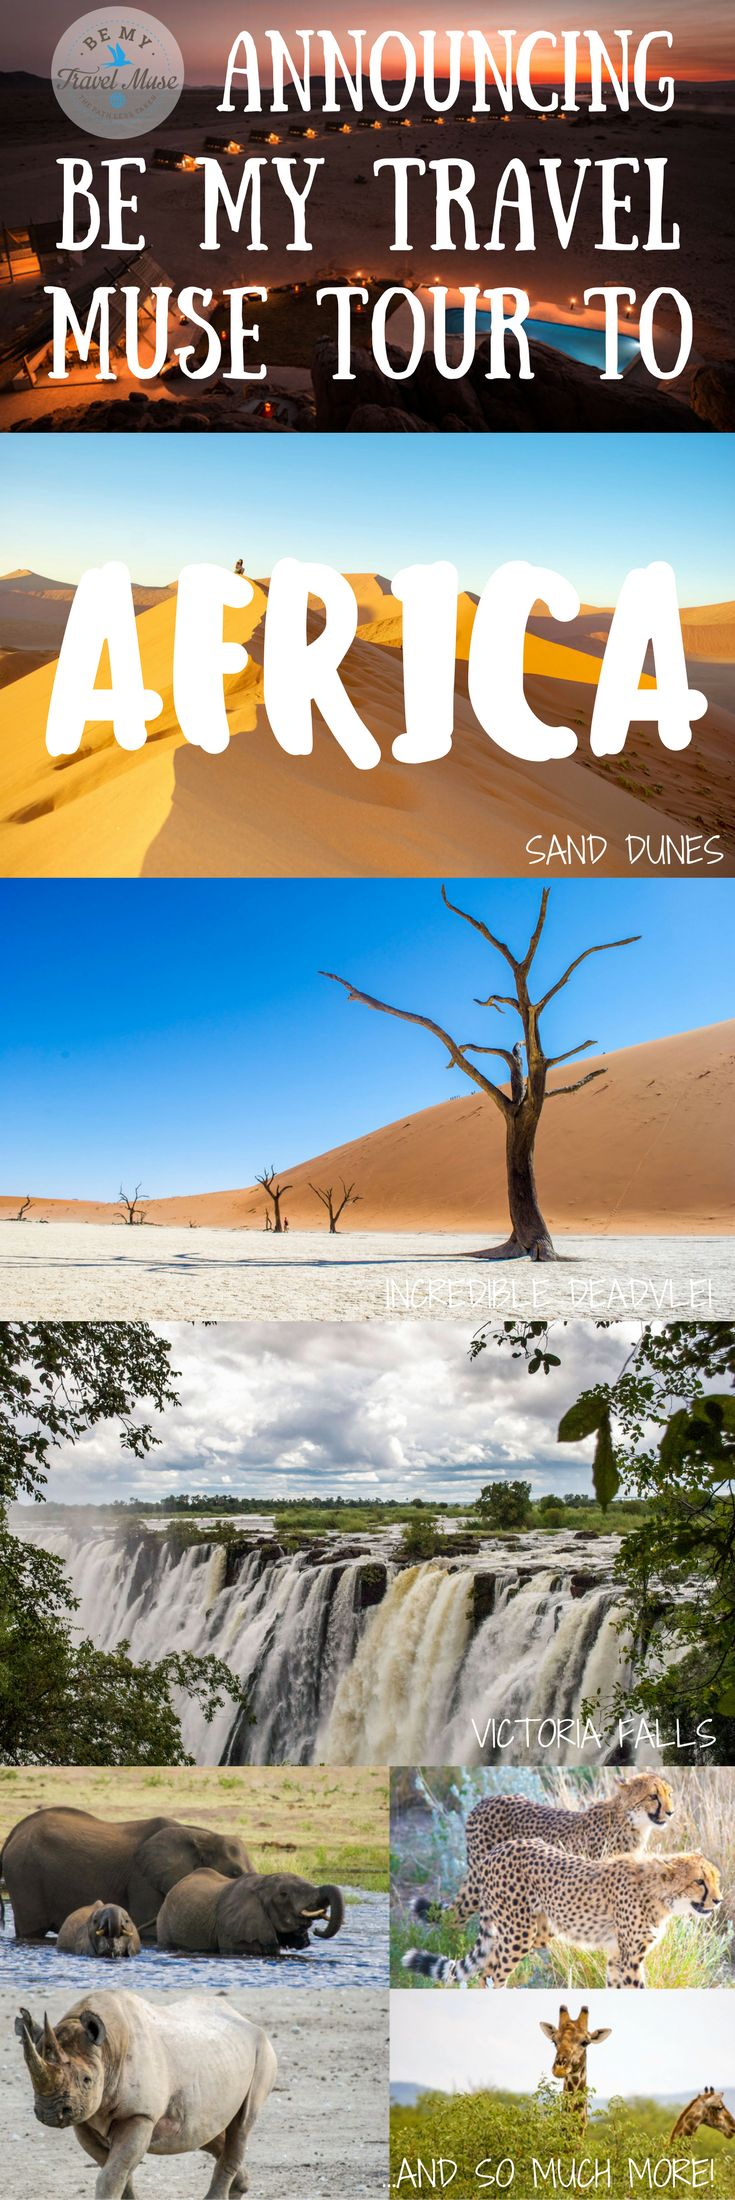 Announcing Be My Travel Muse Tour to Africa in October 2018! Picture rolling sand dunes of the brightest orange, more incredible wild animals than you've ever seen in one place before, and the gorgeous blue of the Okavango Delta. It's all waiting for you on this amazing all-women's adventure trip to Africa. Click for more details | Be My Travel Muse #Africa #Travel